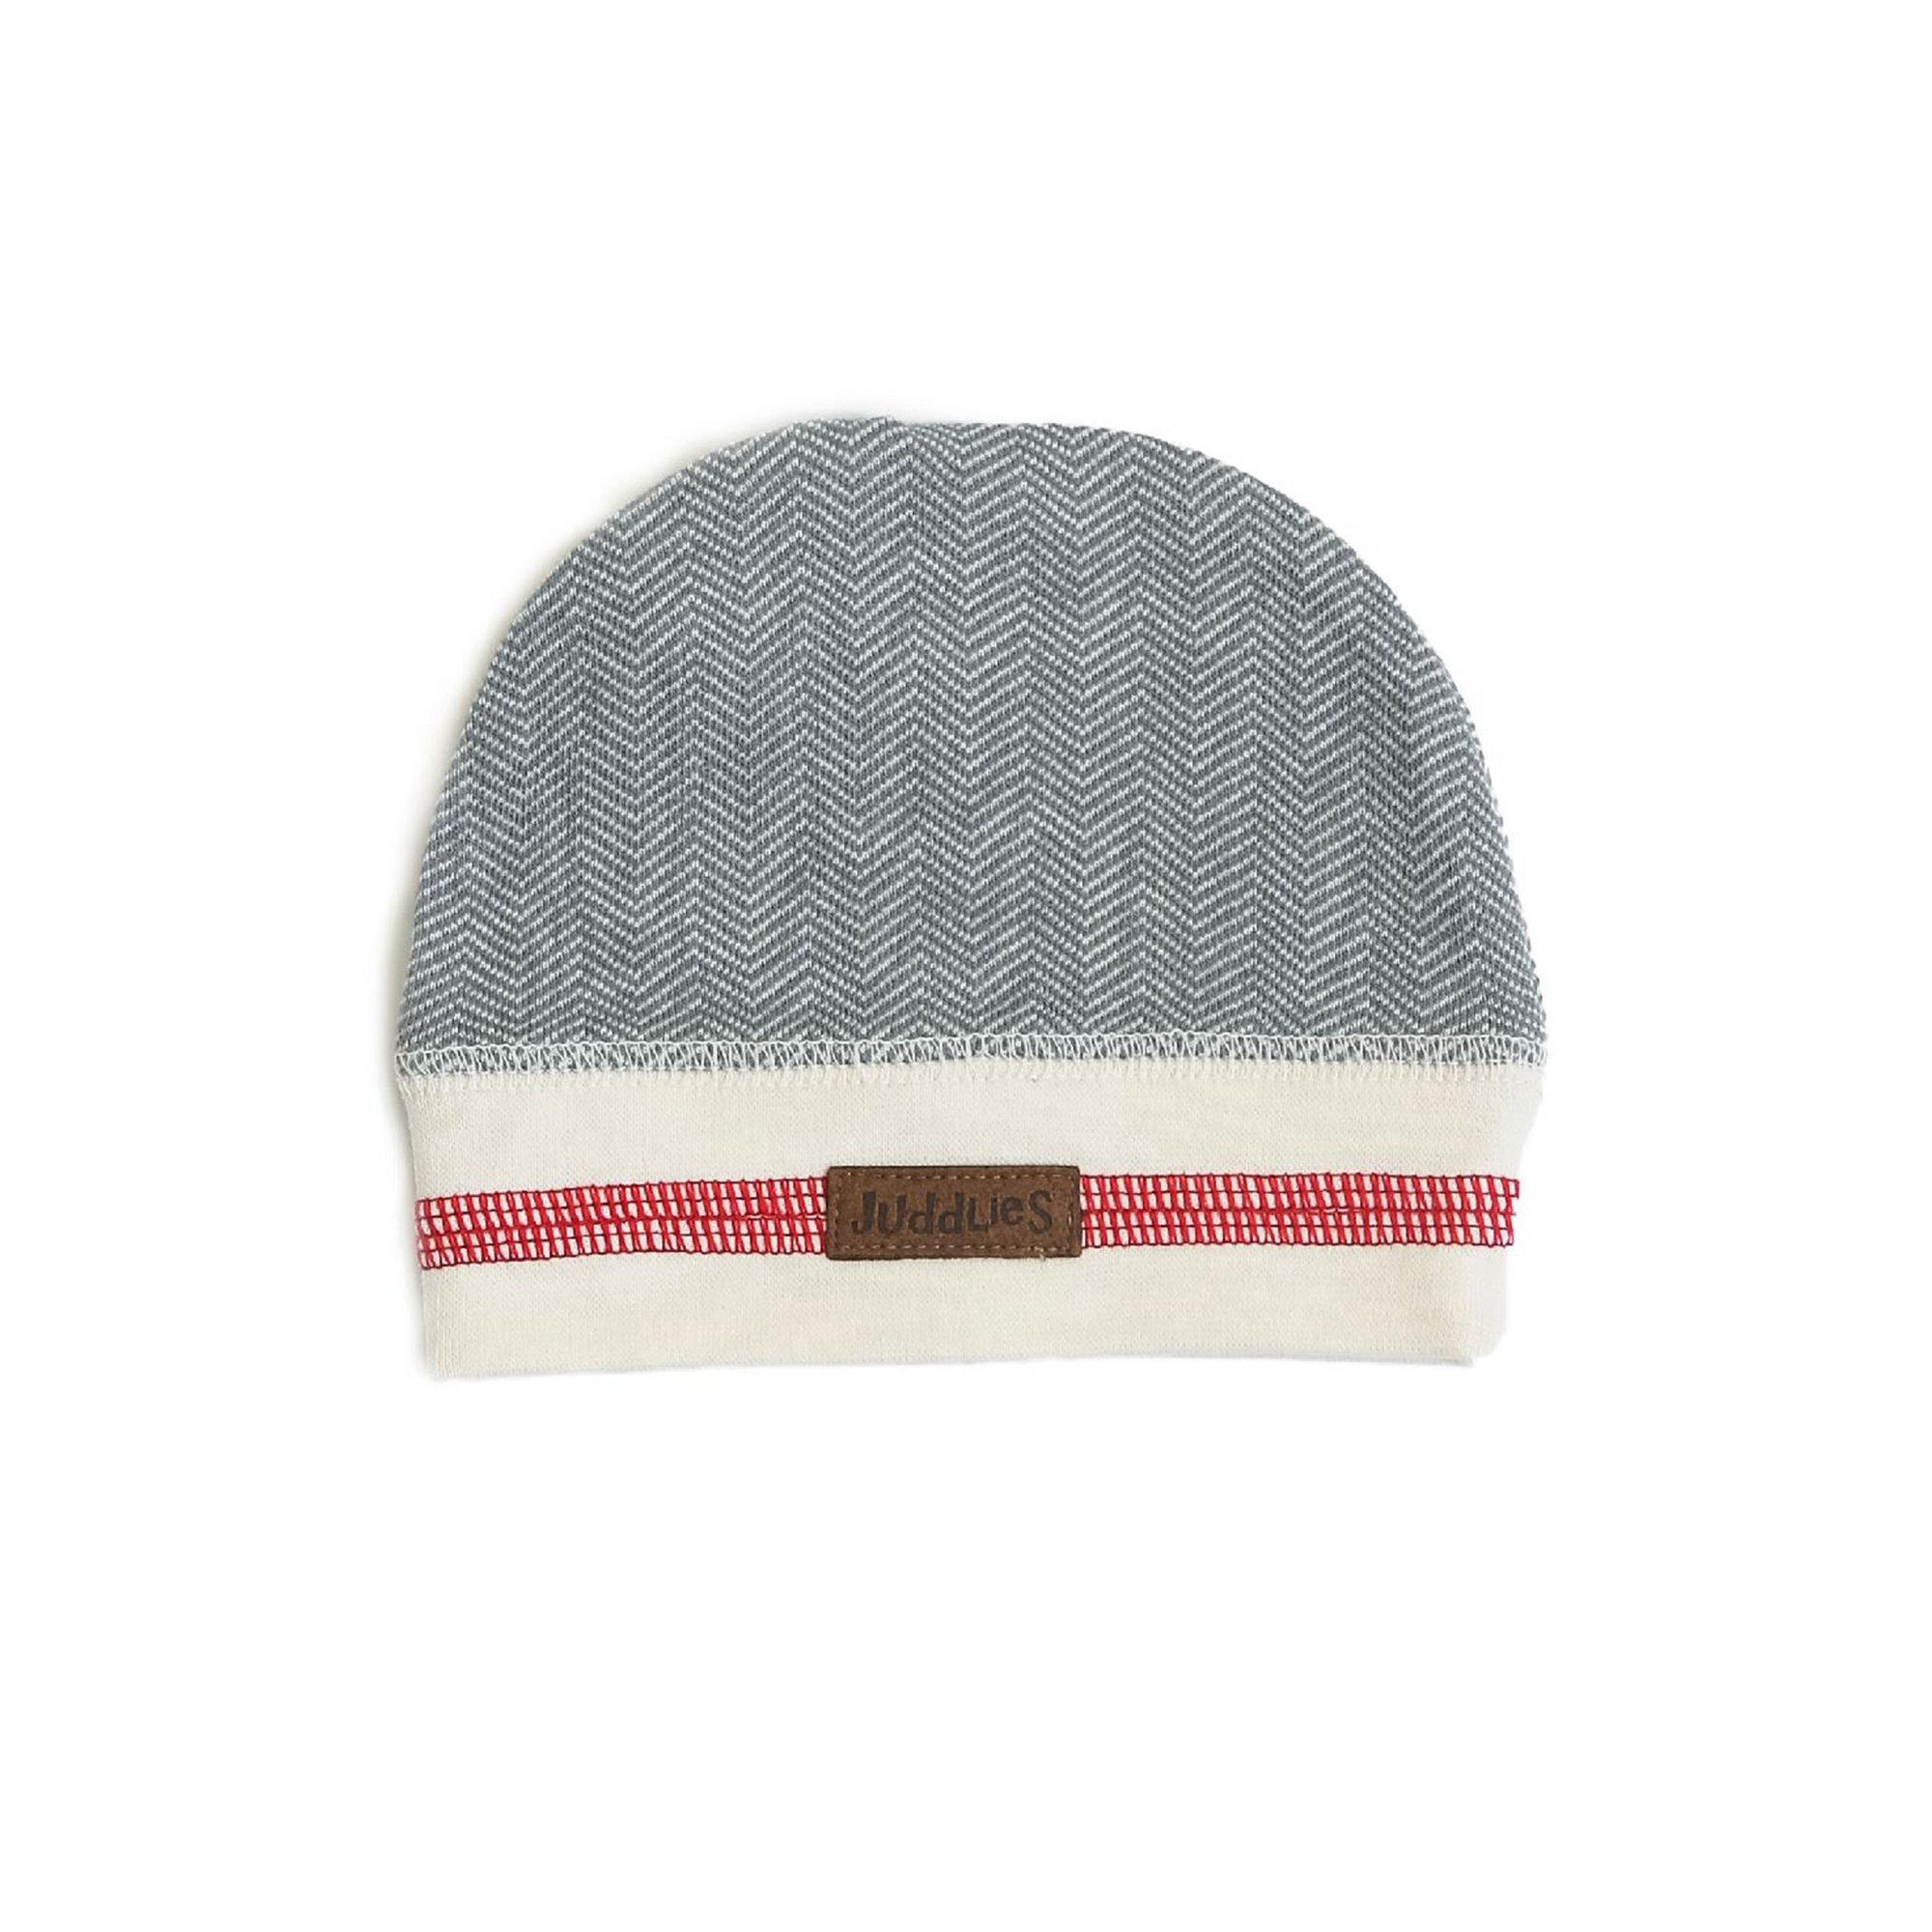 Image of Juddlies Cottage Collection Cottage Beanie Driftwood Grey (04 12M)